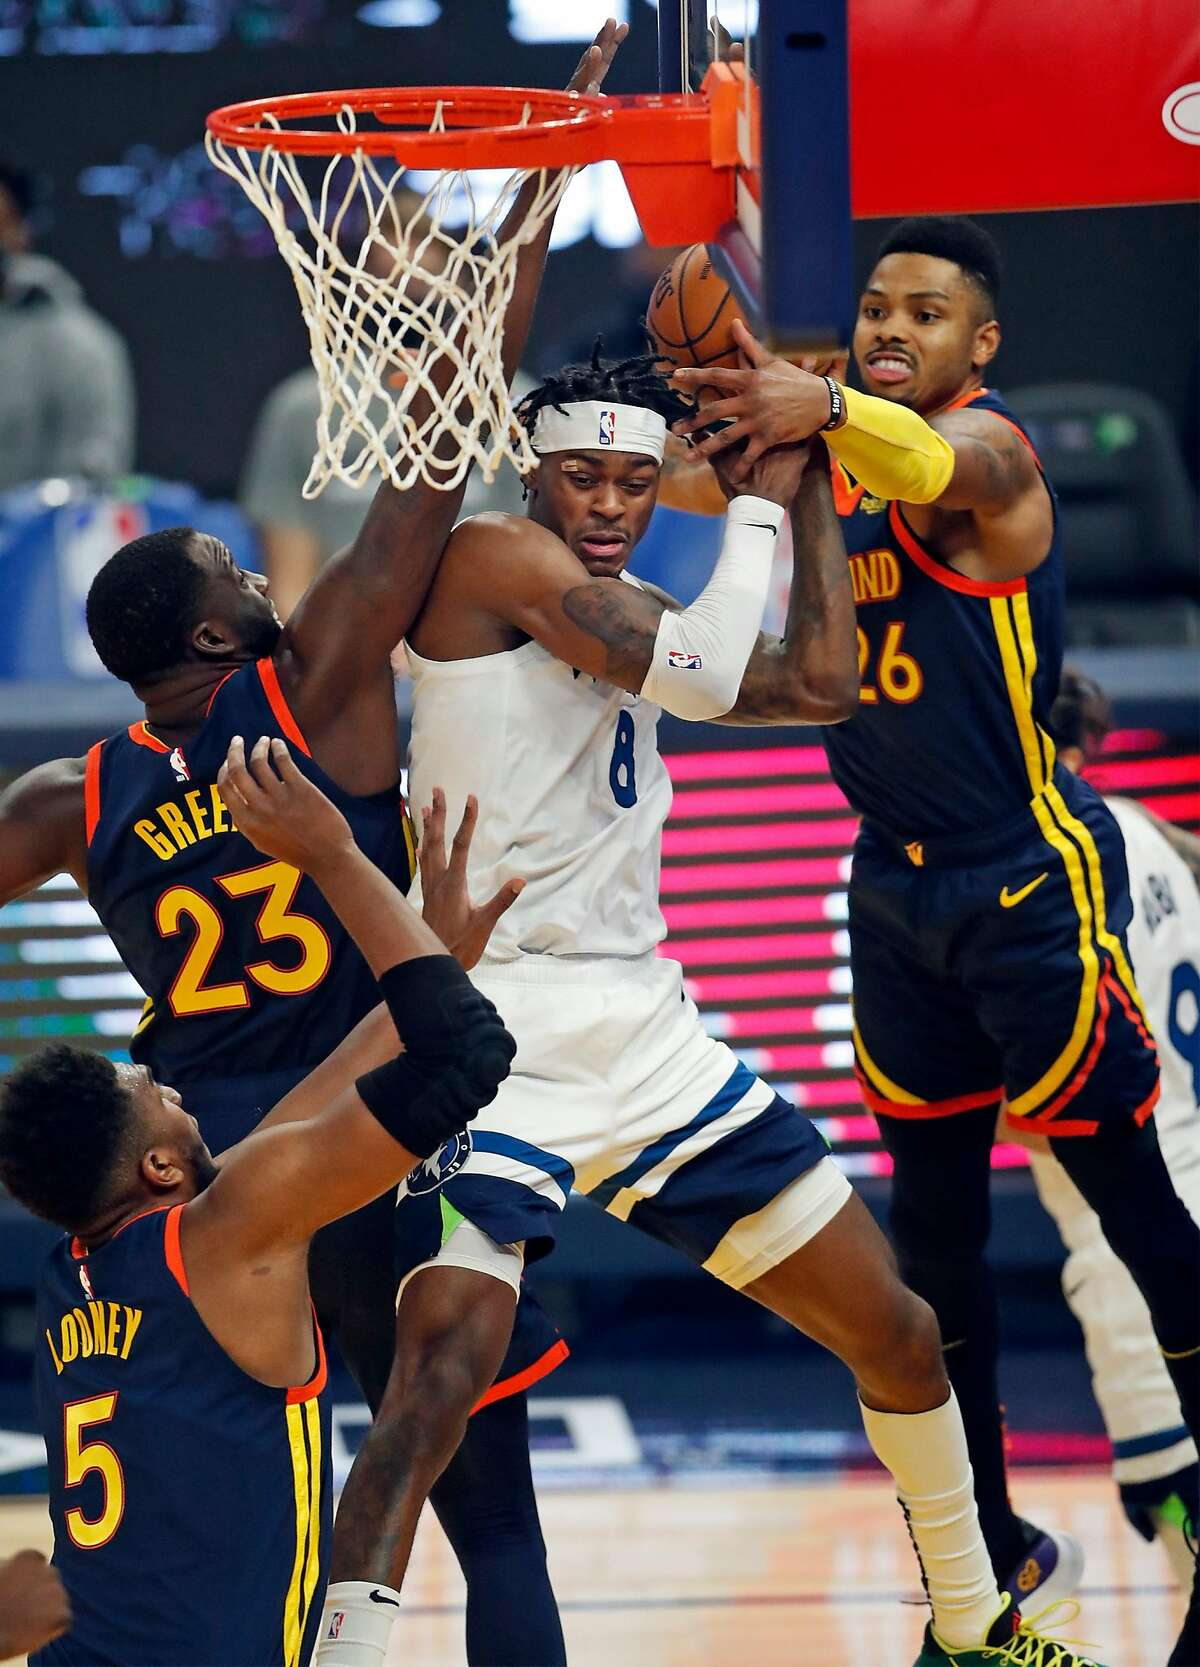 Golden State Warriors' Kent Bazemore and Draymond Green defend against Minnesota Timberwolves' Jarred Vanderbilt in 1st quarter during NBA game at Chase Center in San Francisco, Calif., on Wednesday, January 27, 2021.